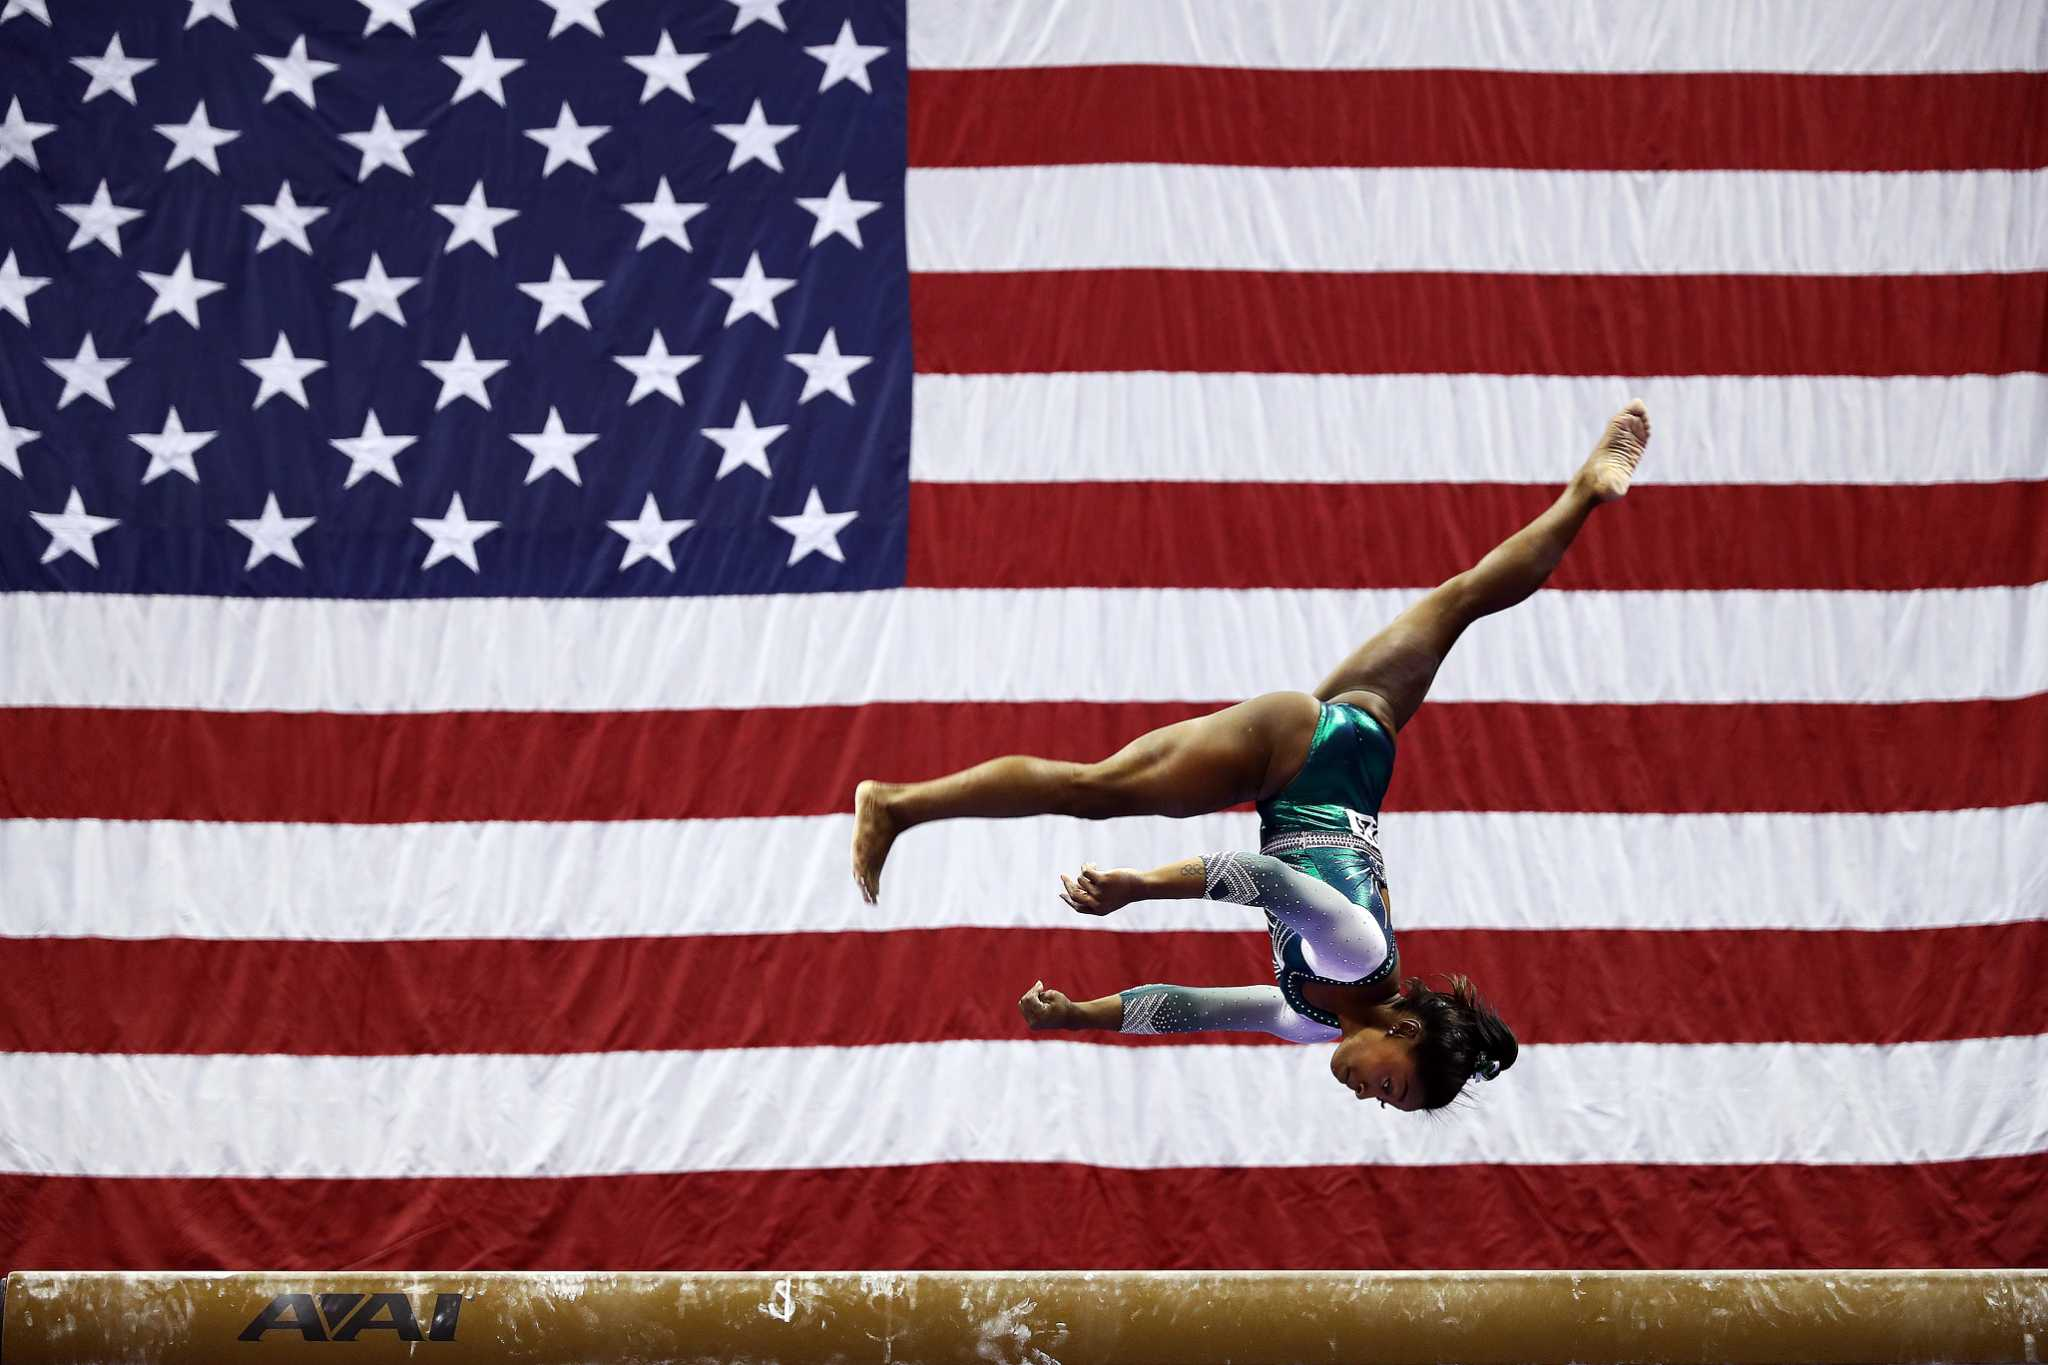 Simone Biles simply the best of the best